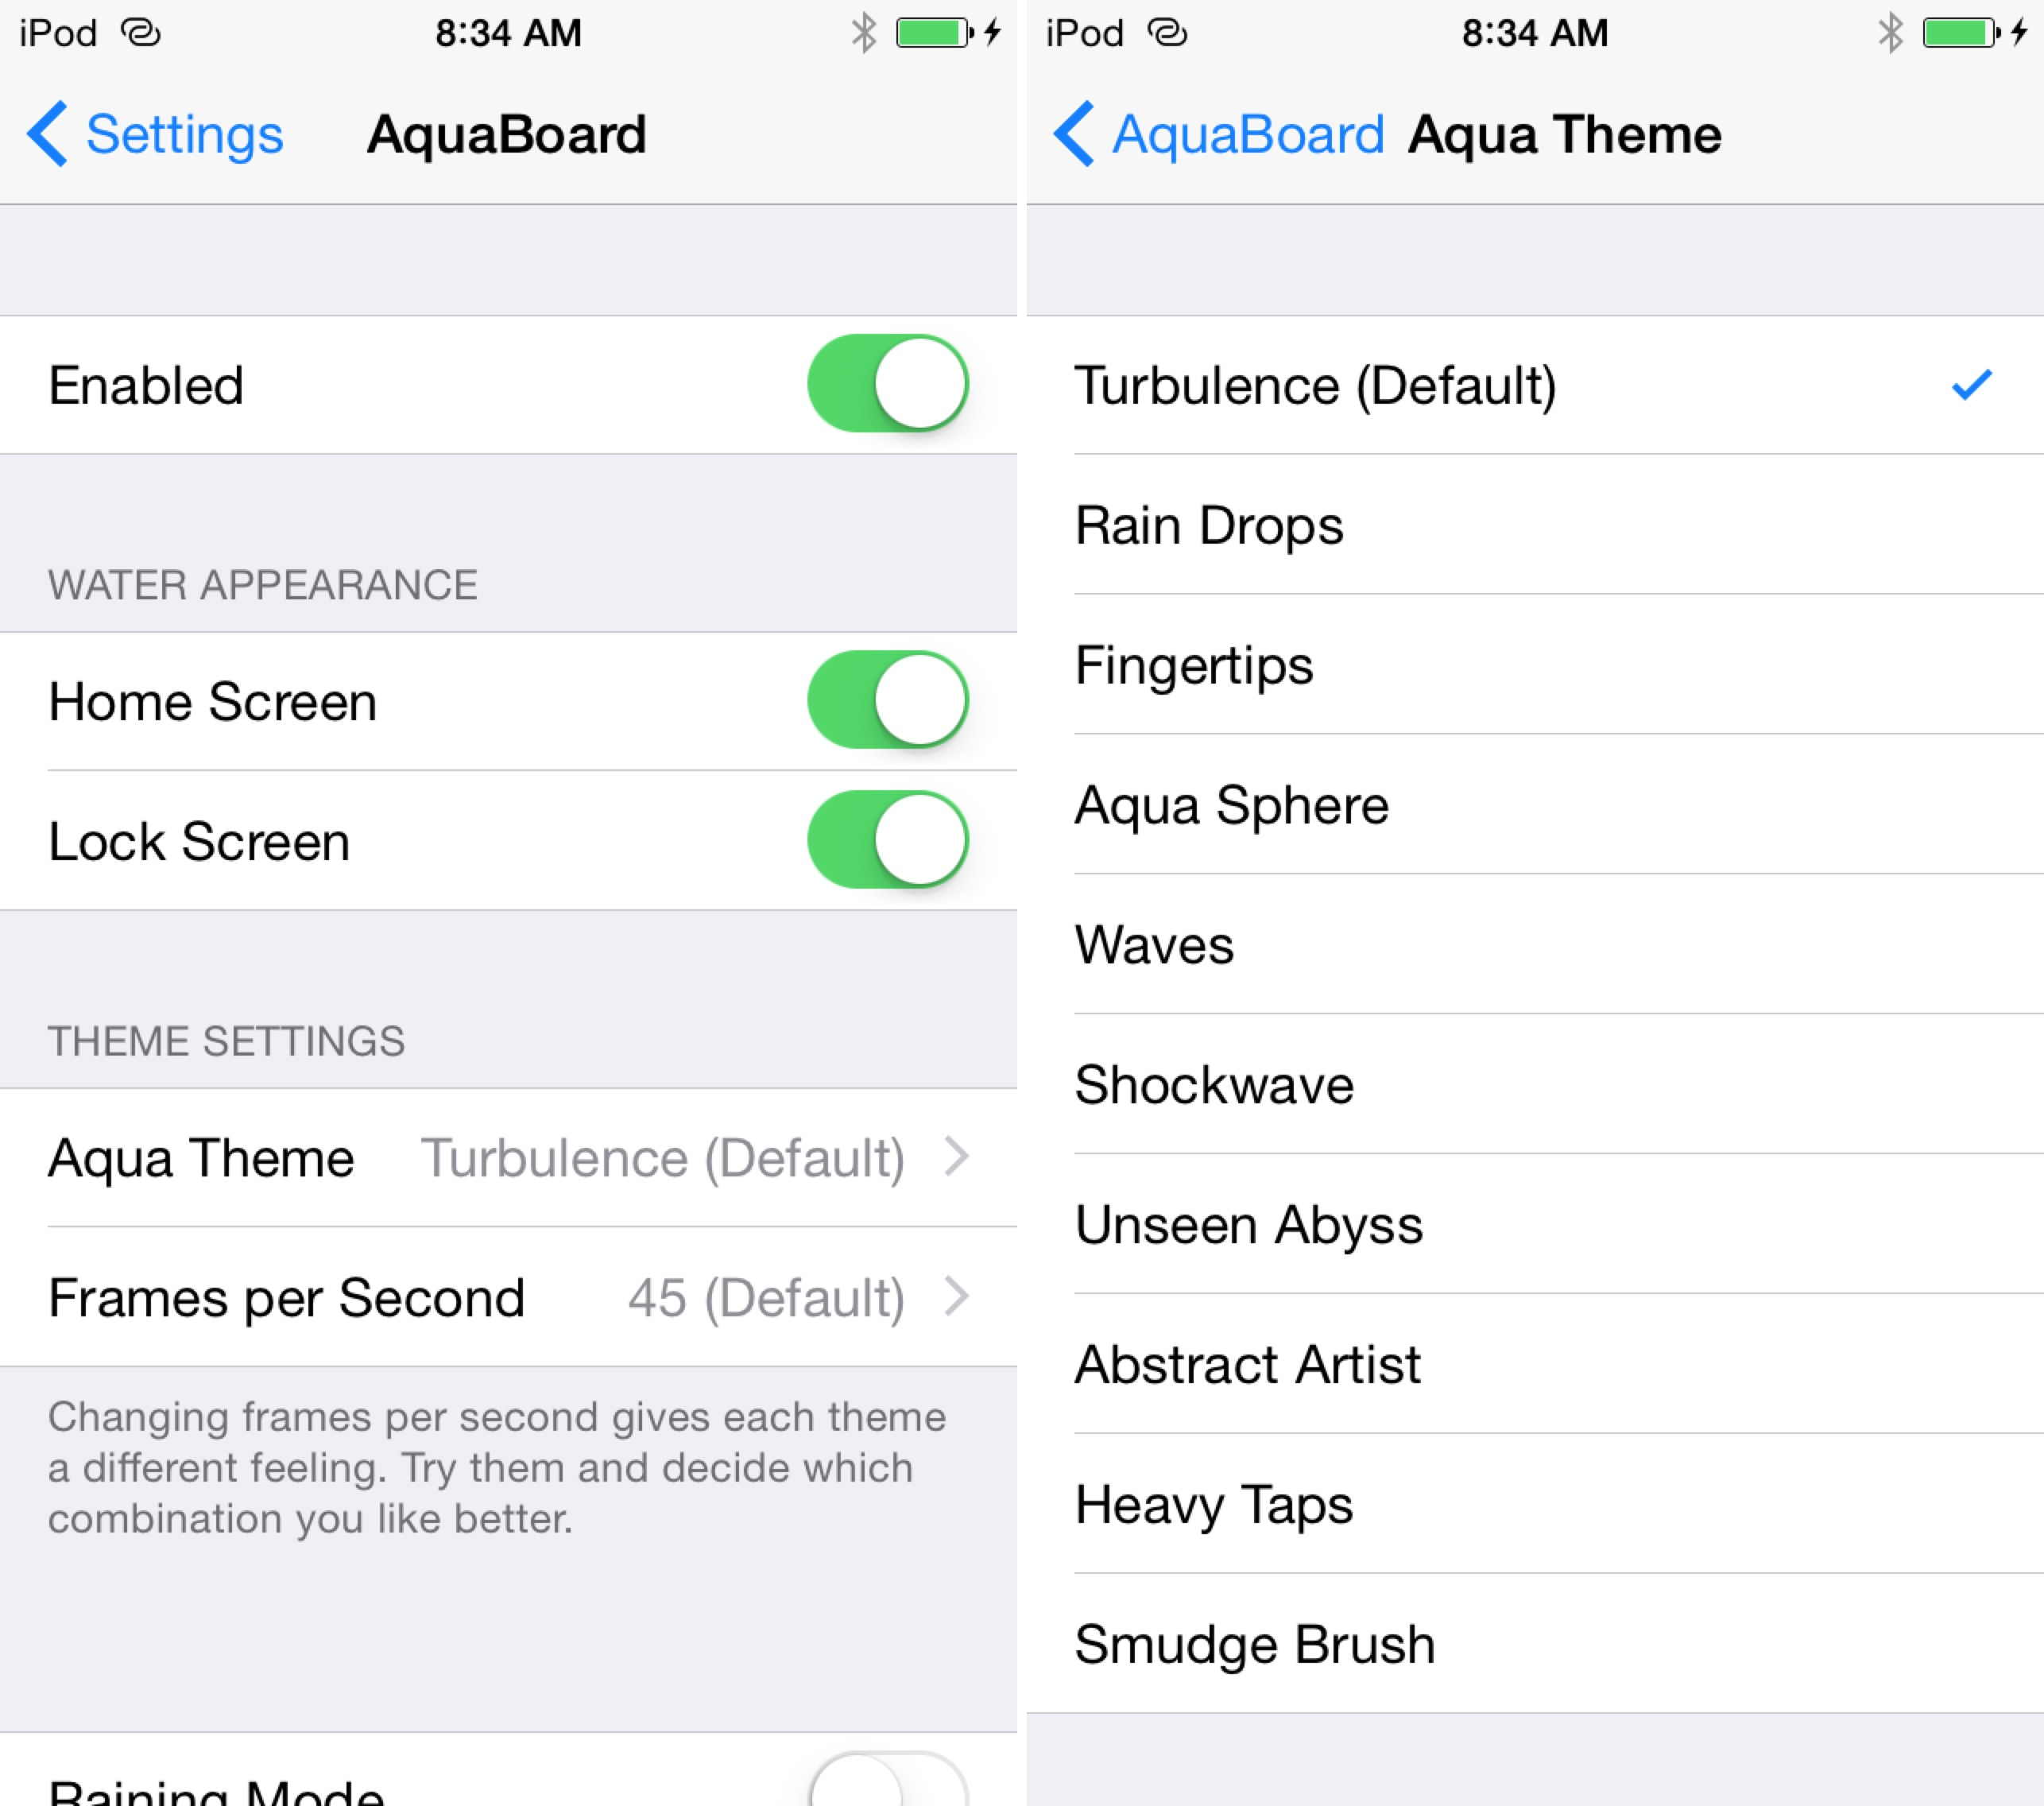 AquaBoard iOS 8 Prefs